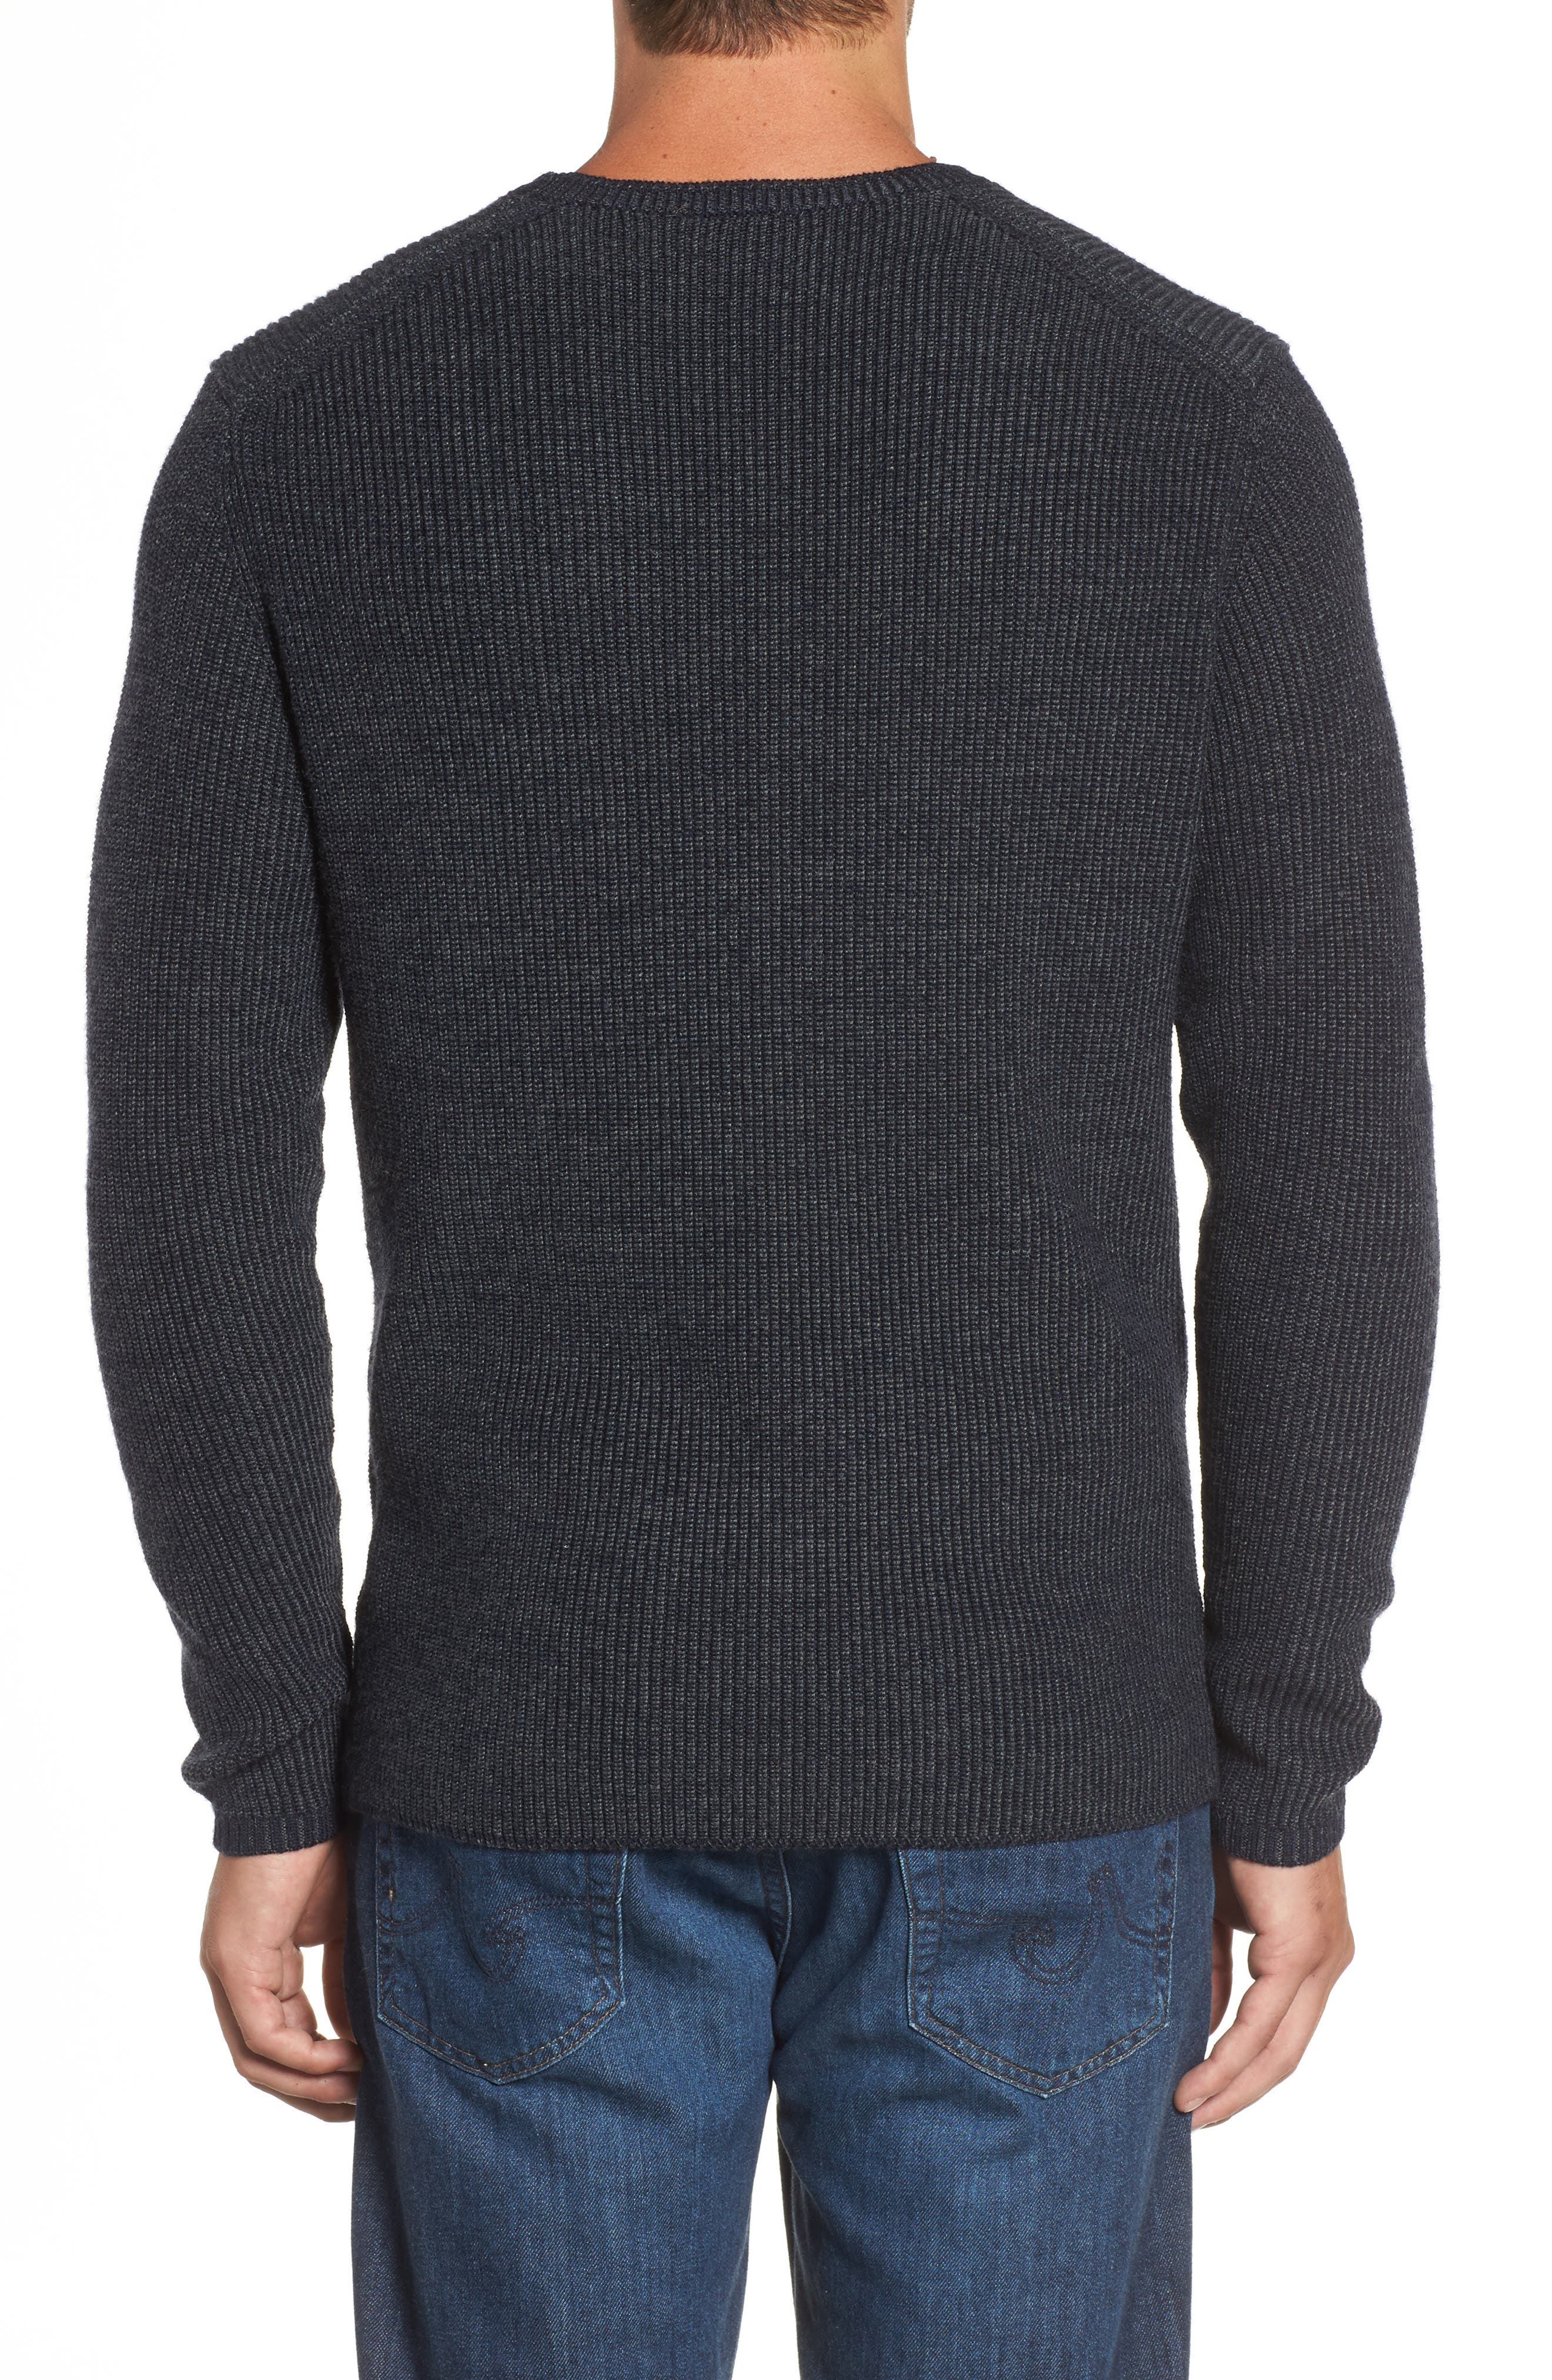 Whalers Bay Ribbed Merino Wool Sweater,                             Alternate thumbnail 2, color,                             Night